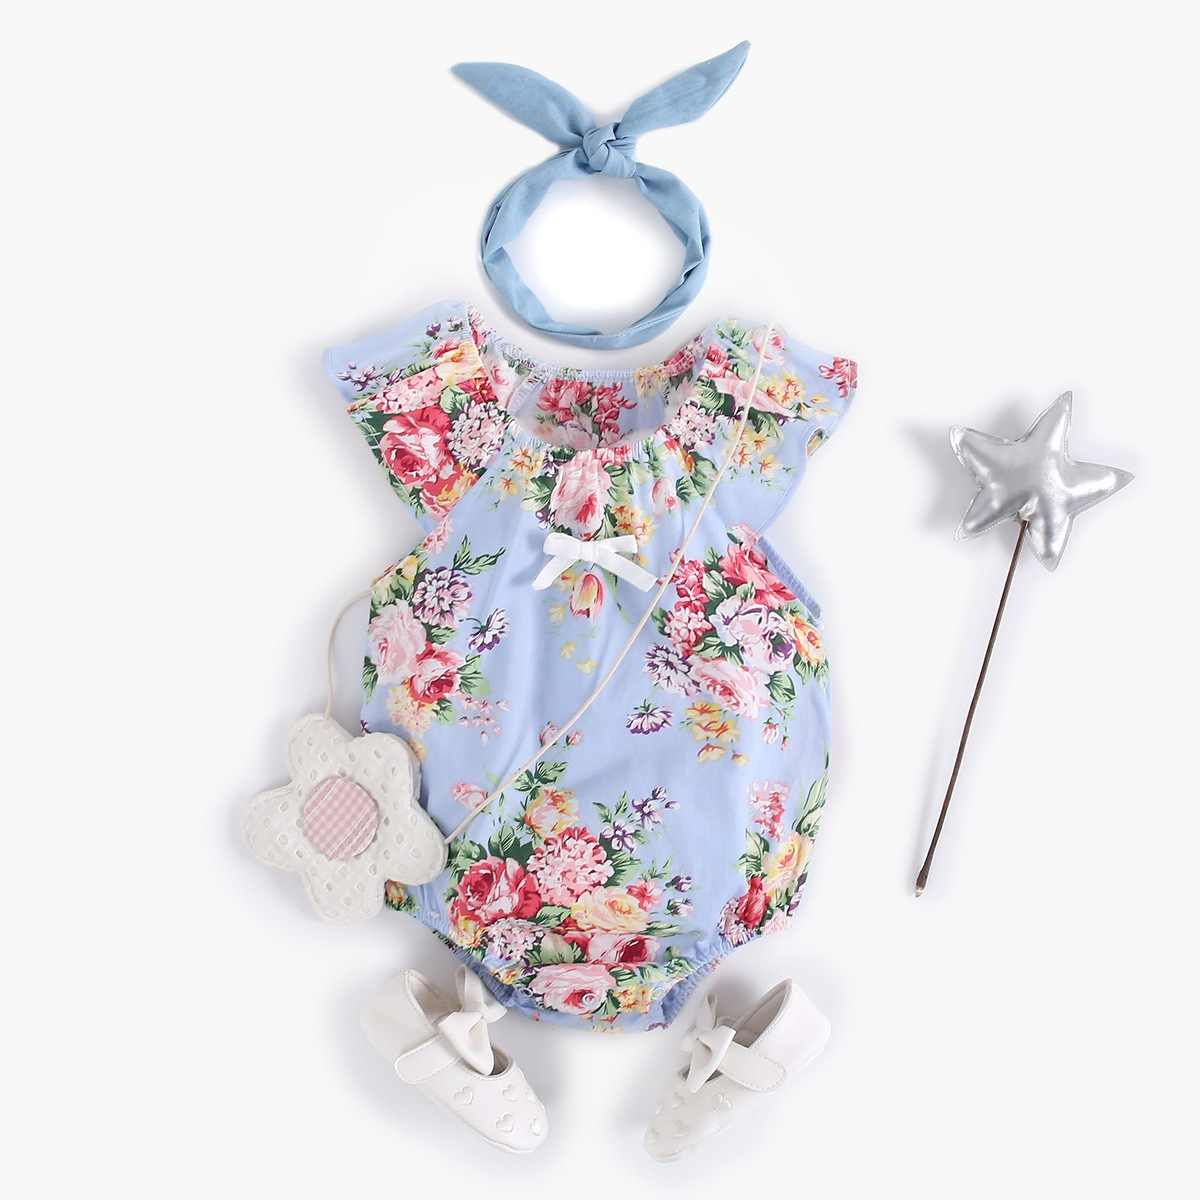 Summer New Arrival Toddler Girls Short Sleeve Breathable Blue Rompers Newborn Baby Girls Soft Cotton Cute Floral Print Bodysuit